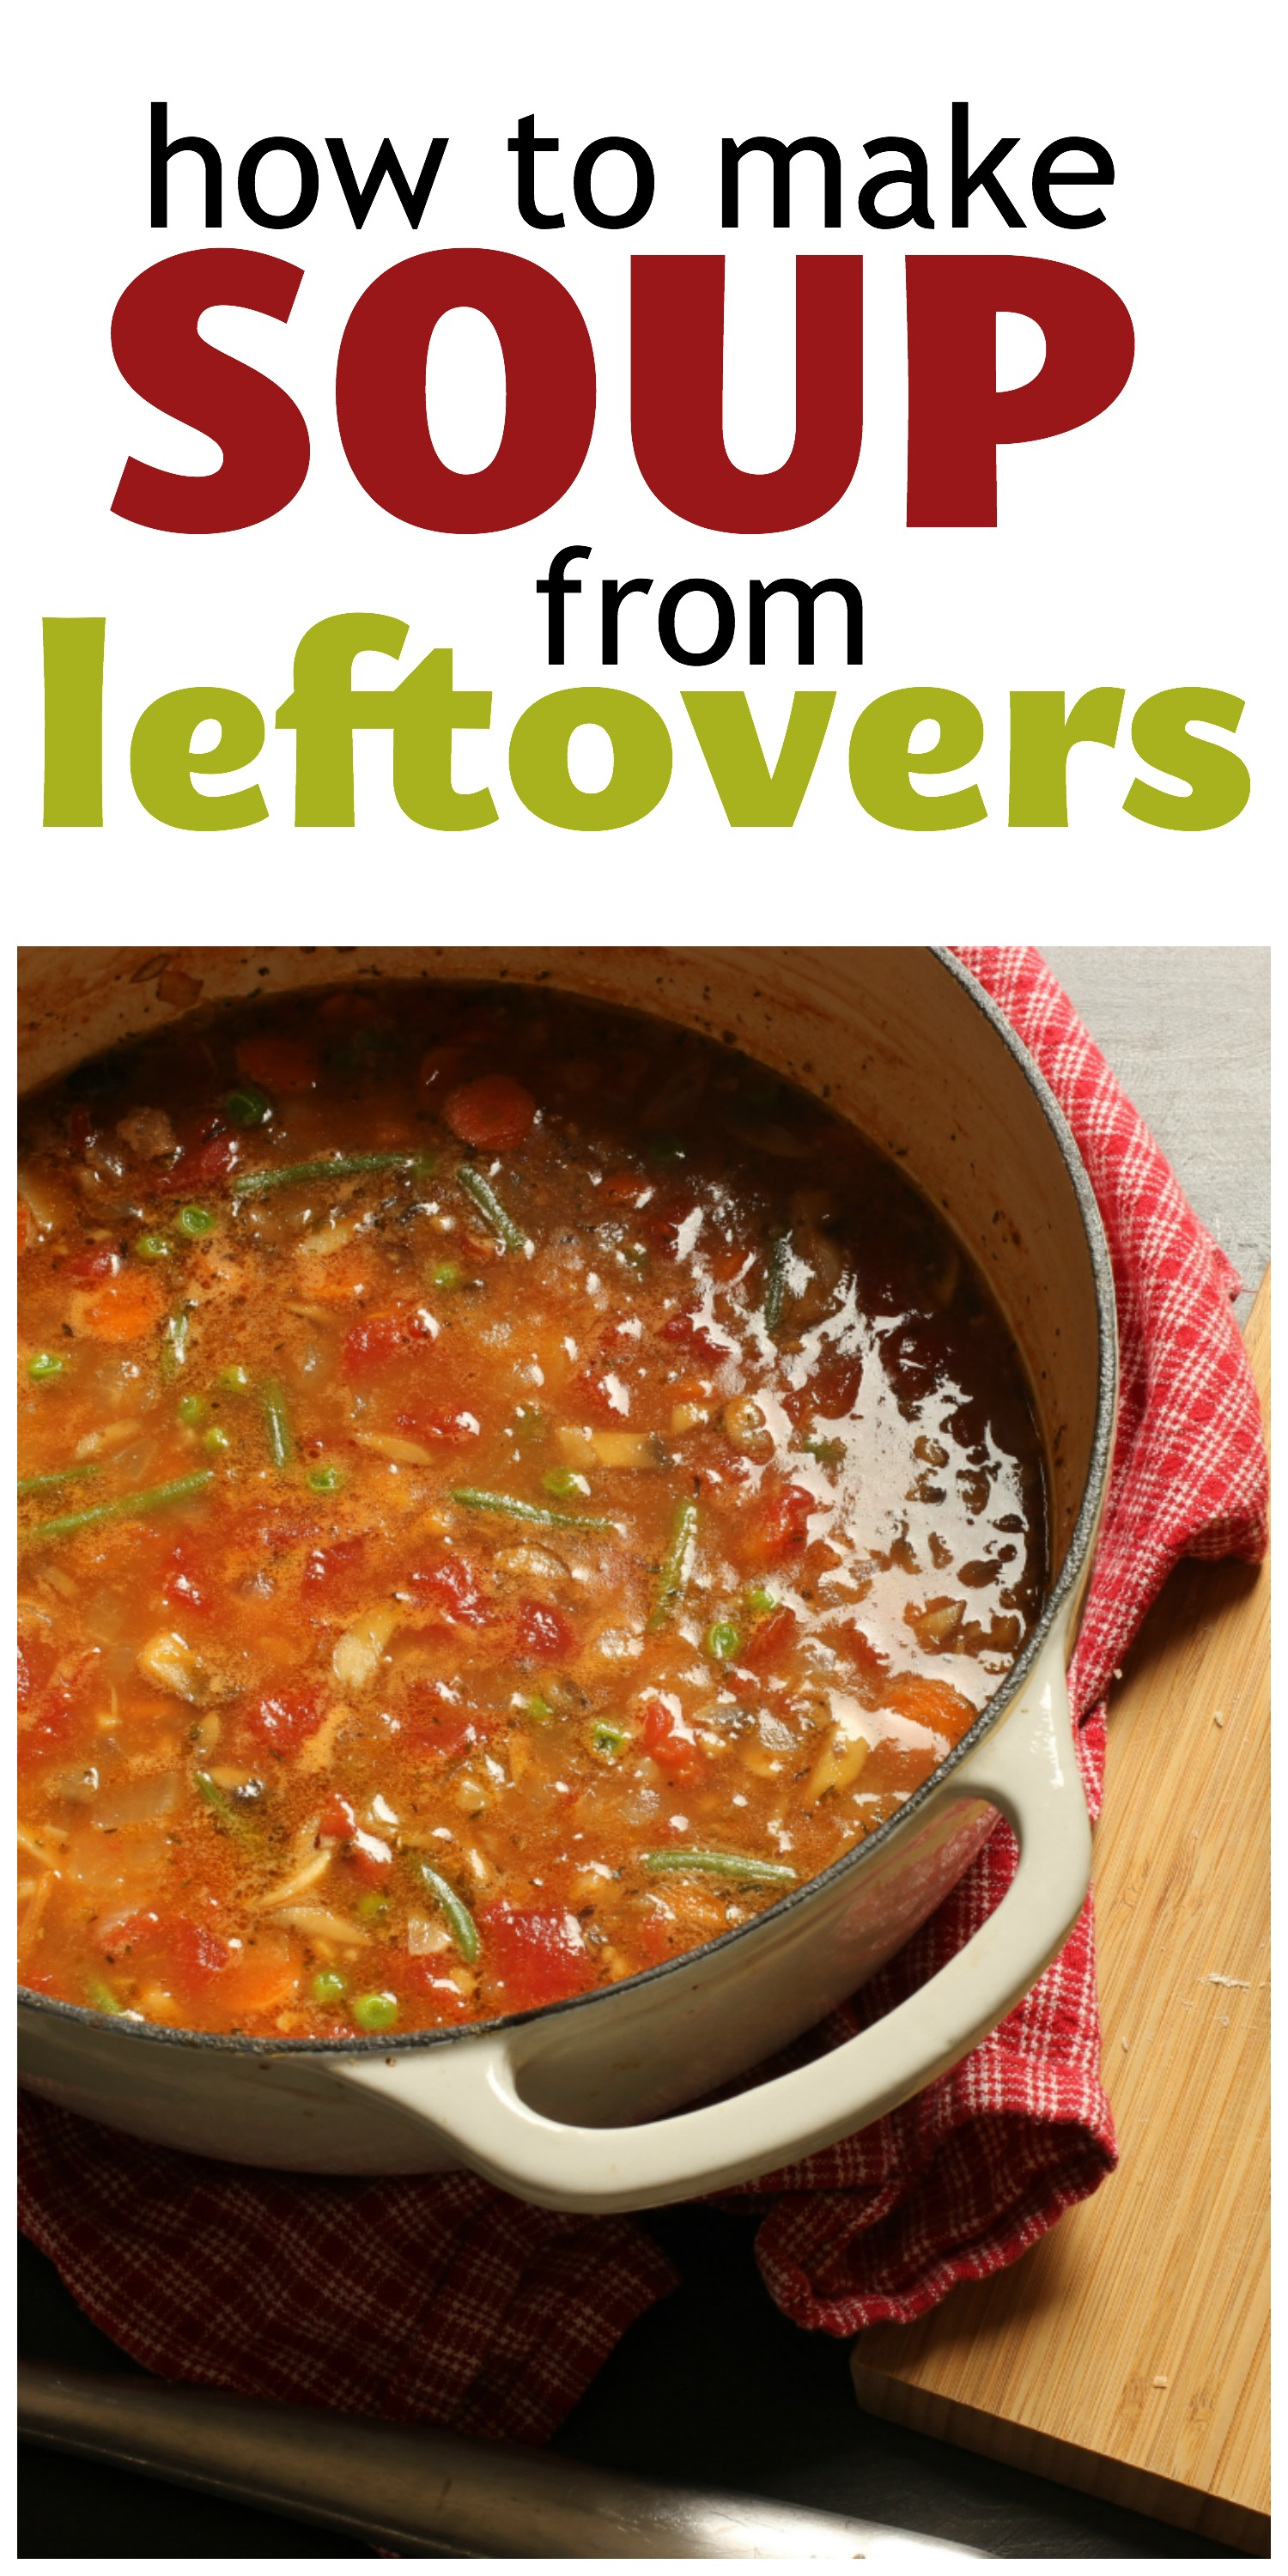 How to Make Soup from Leftovers